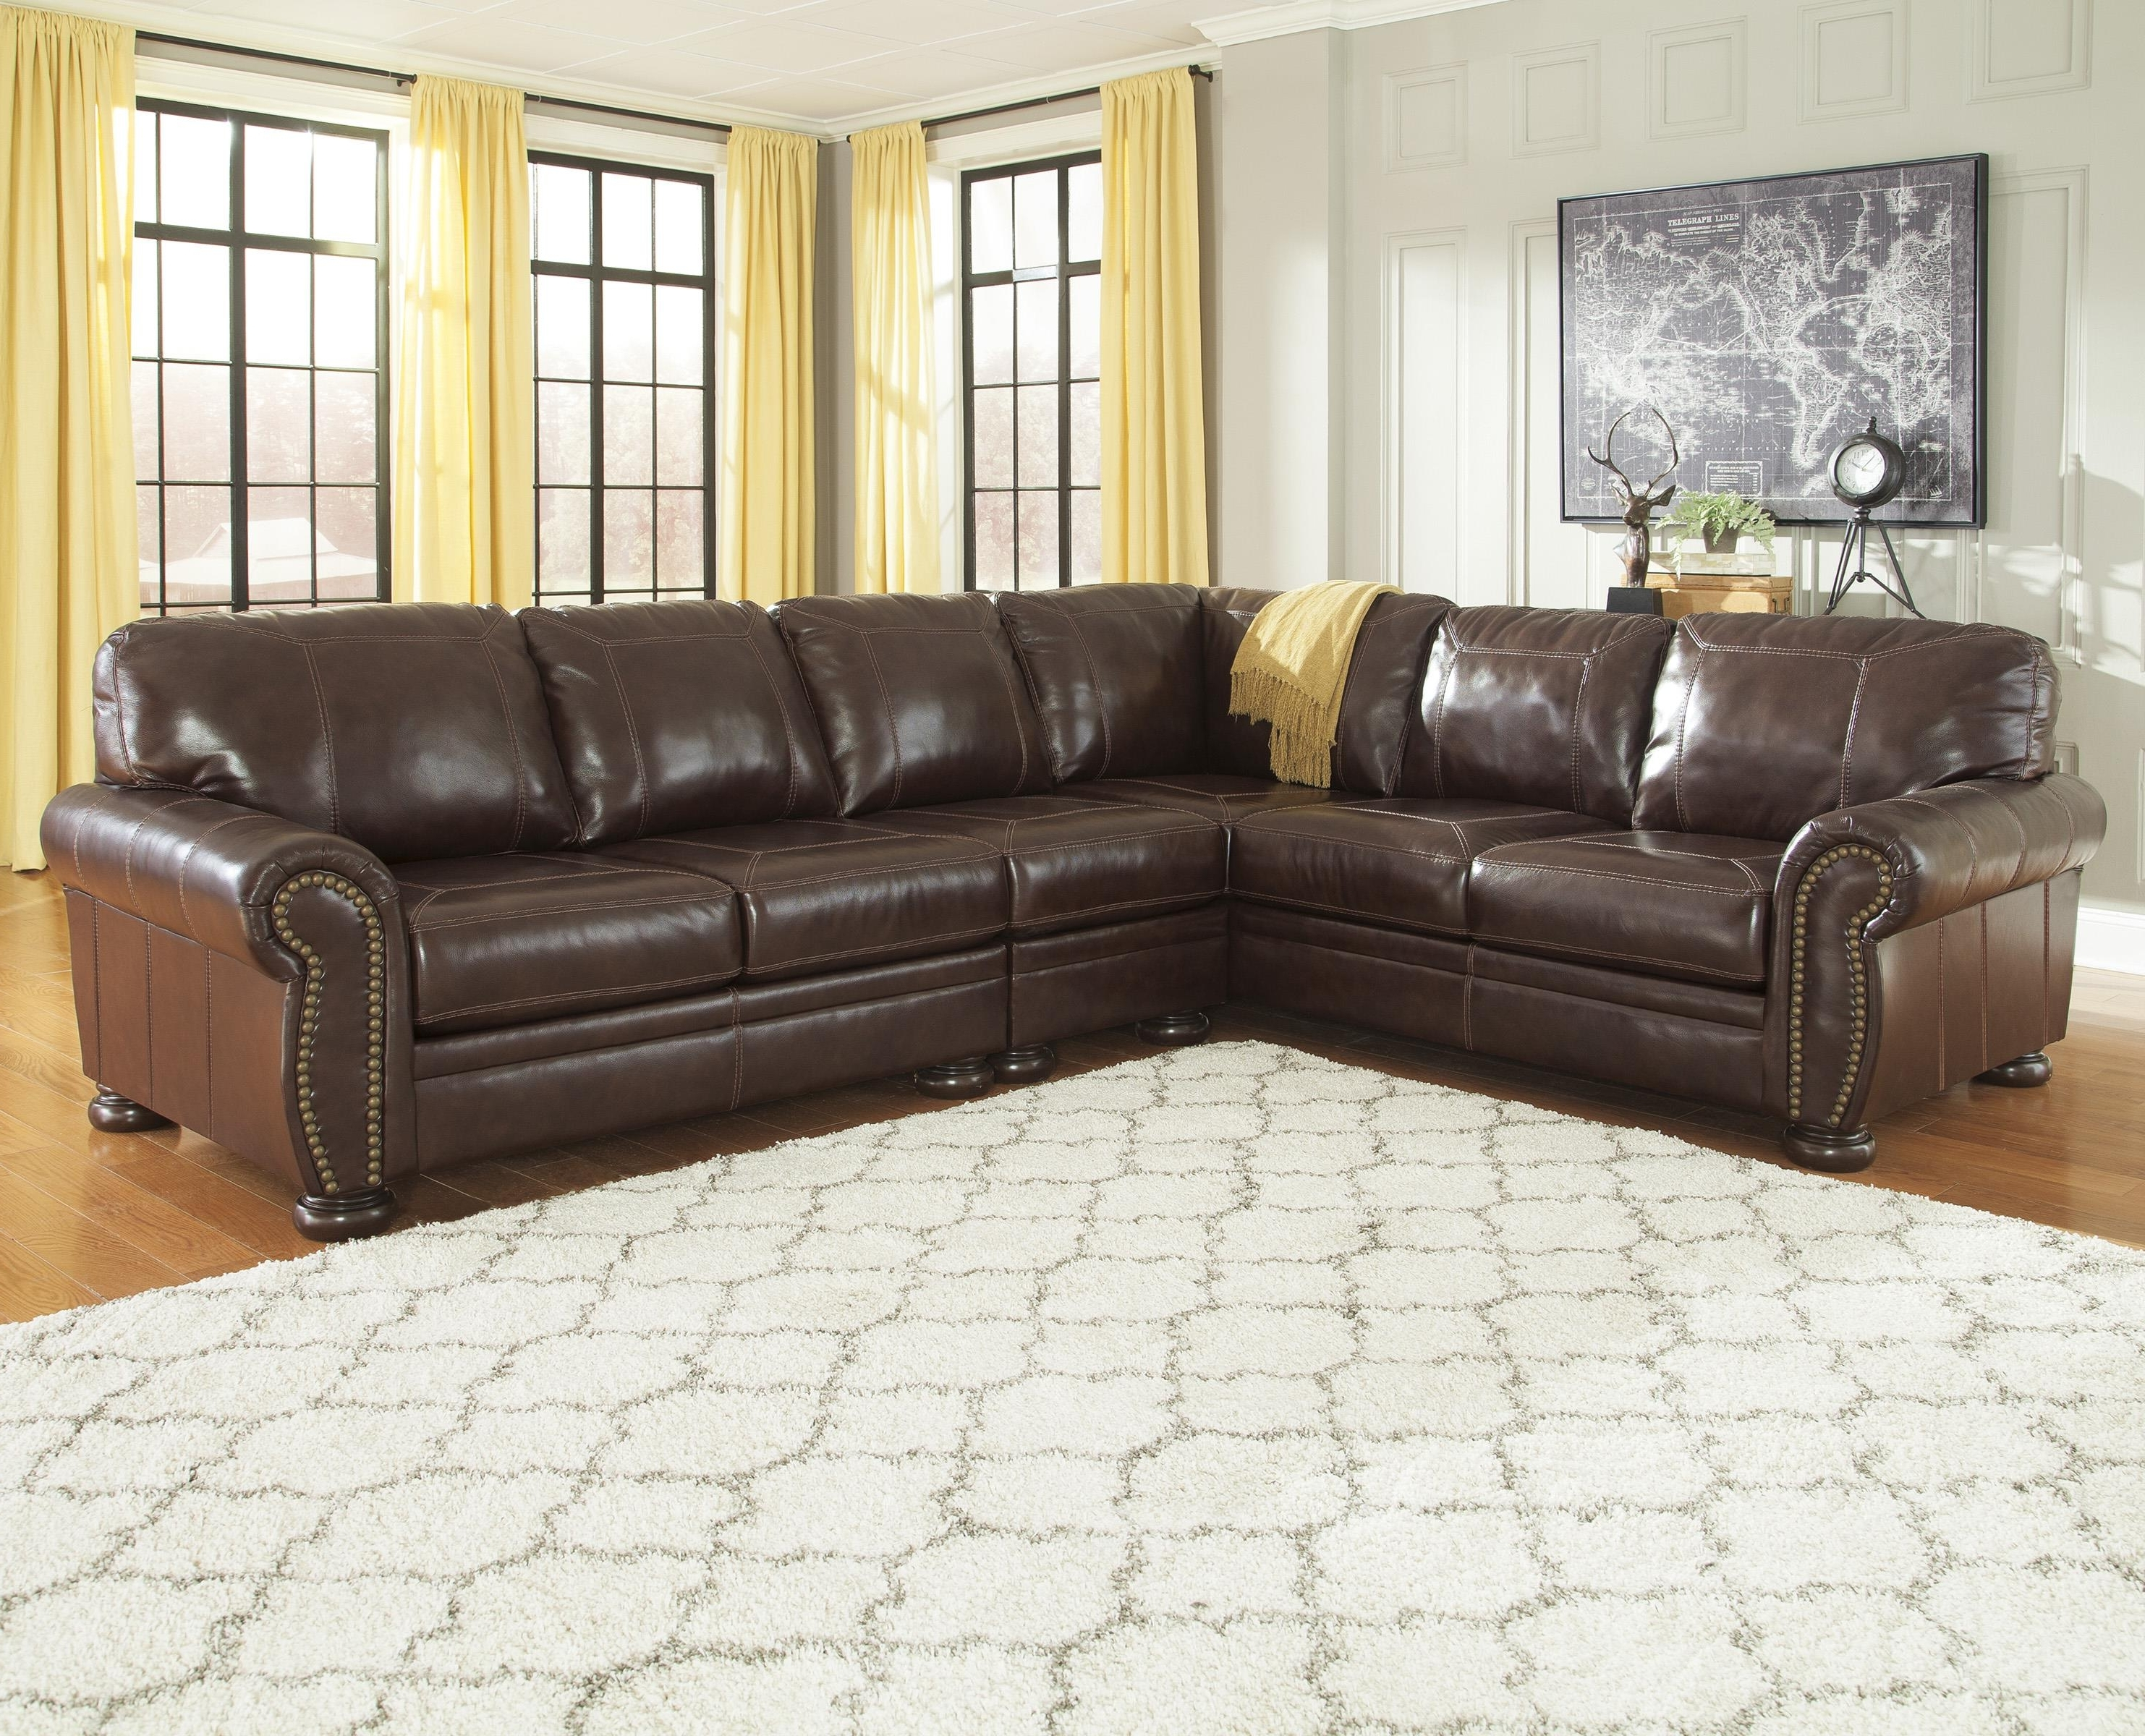 Sectional Sofas With Nailheads Regarding Fashionable 3 Piece Leather Match Sectional With Rolled Arms, Nailhead Trim (View 16 of 20)